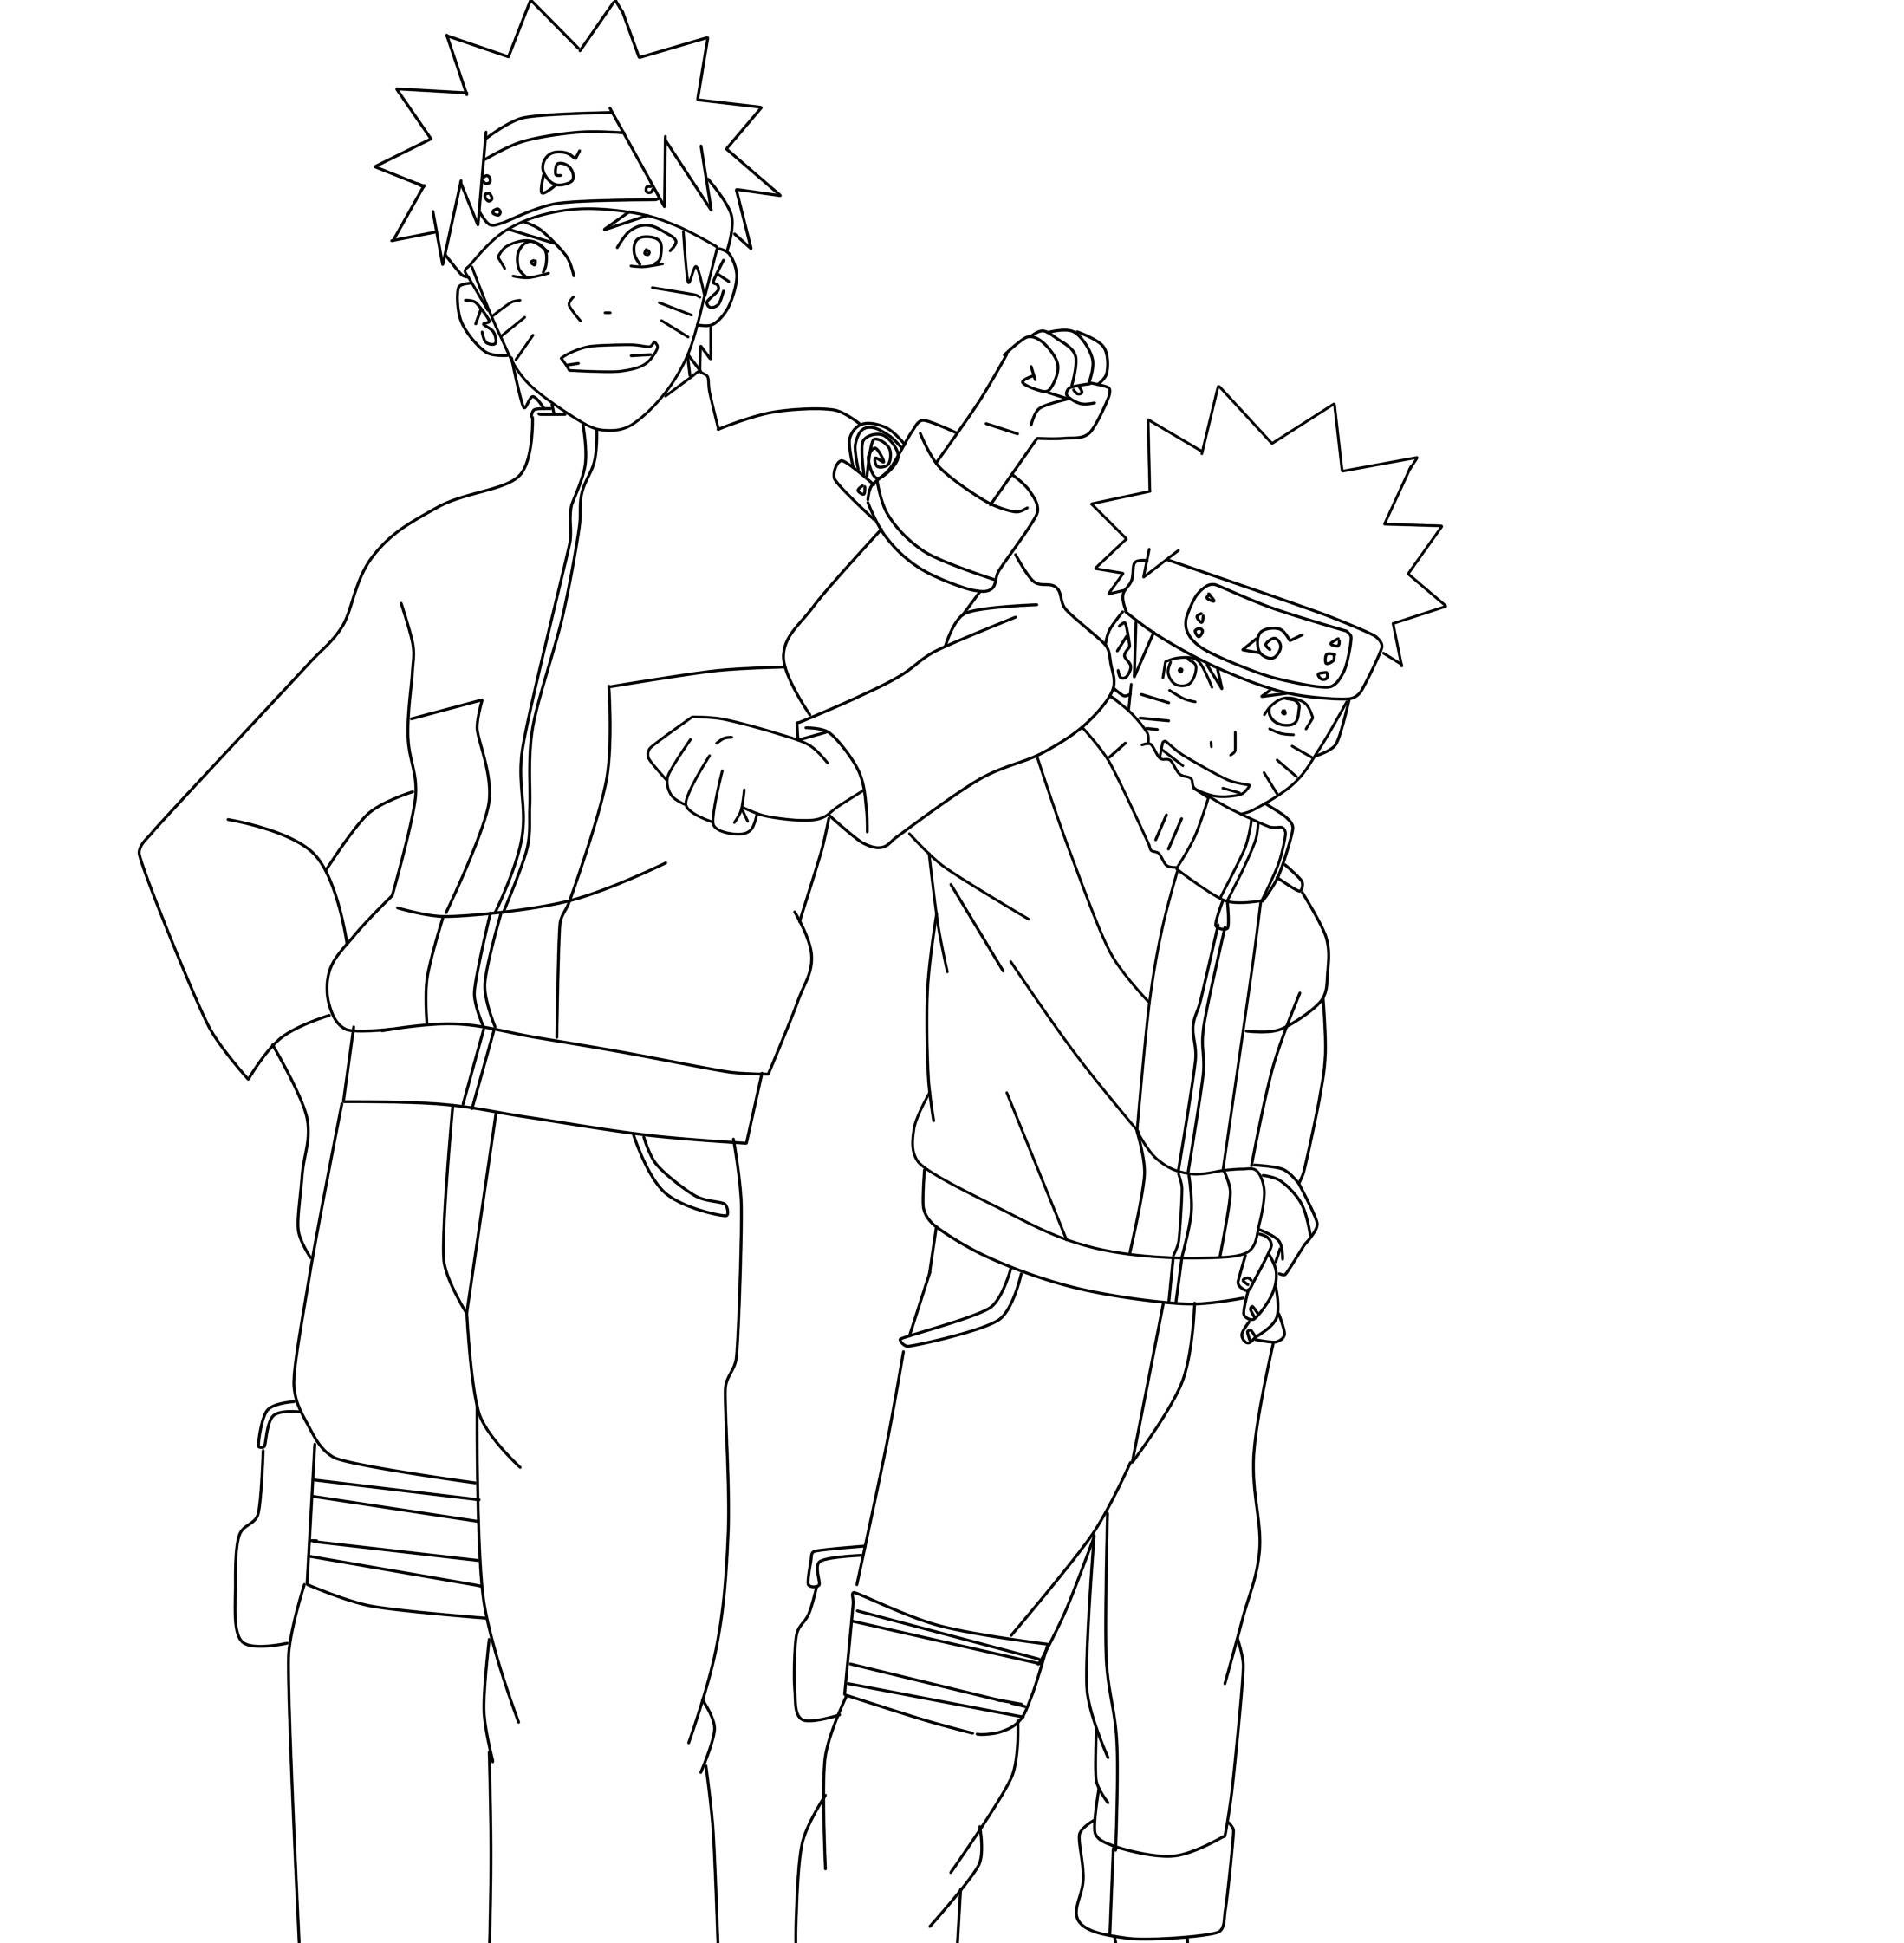 Lineart Naruto : Naruto and lineart by krizeii on deviantart